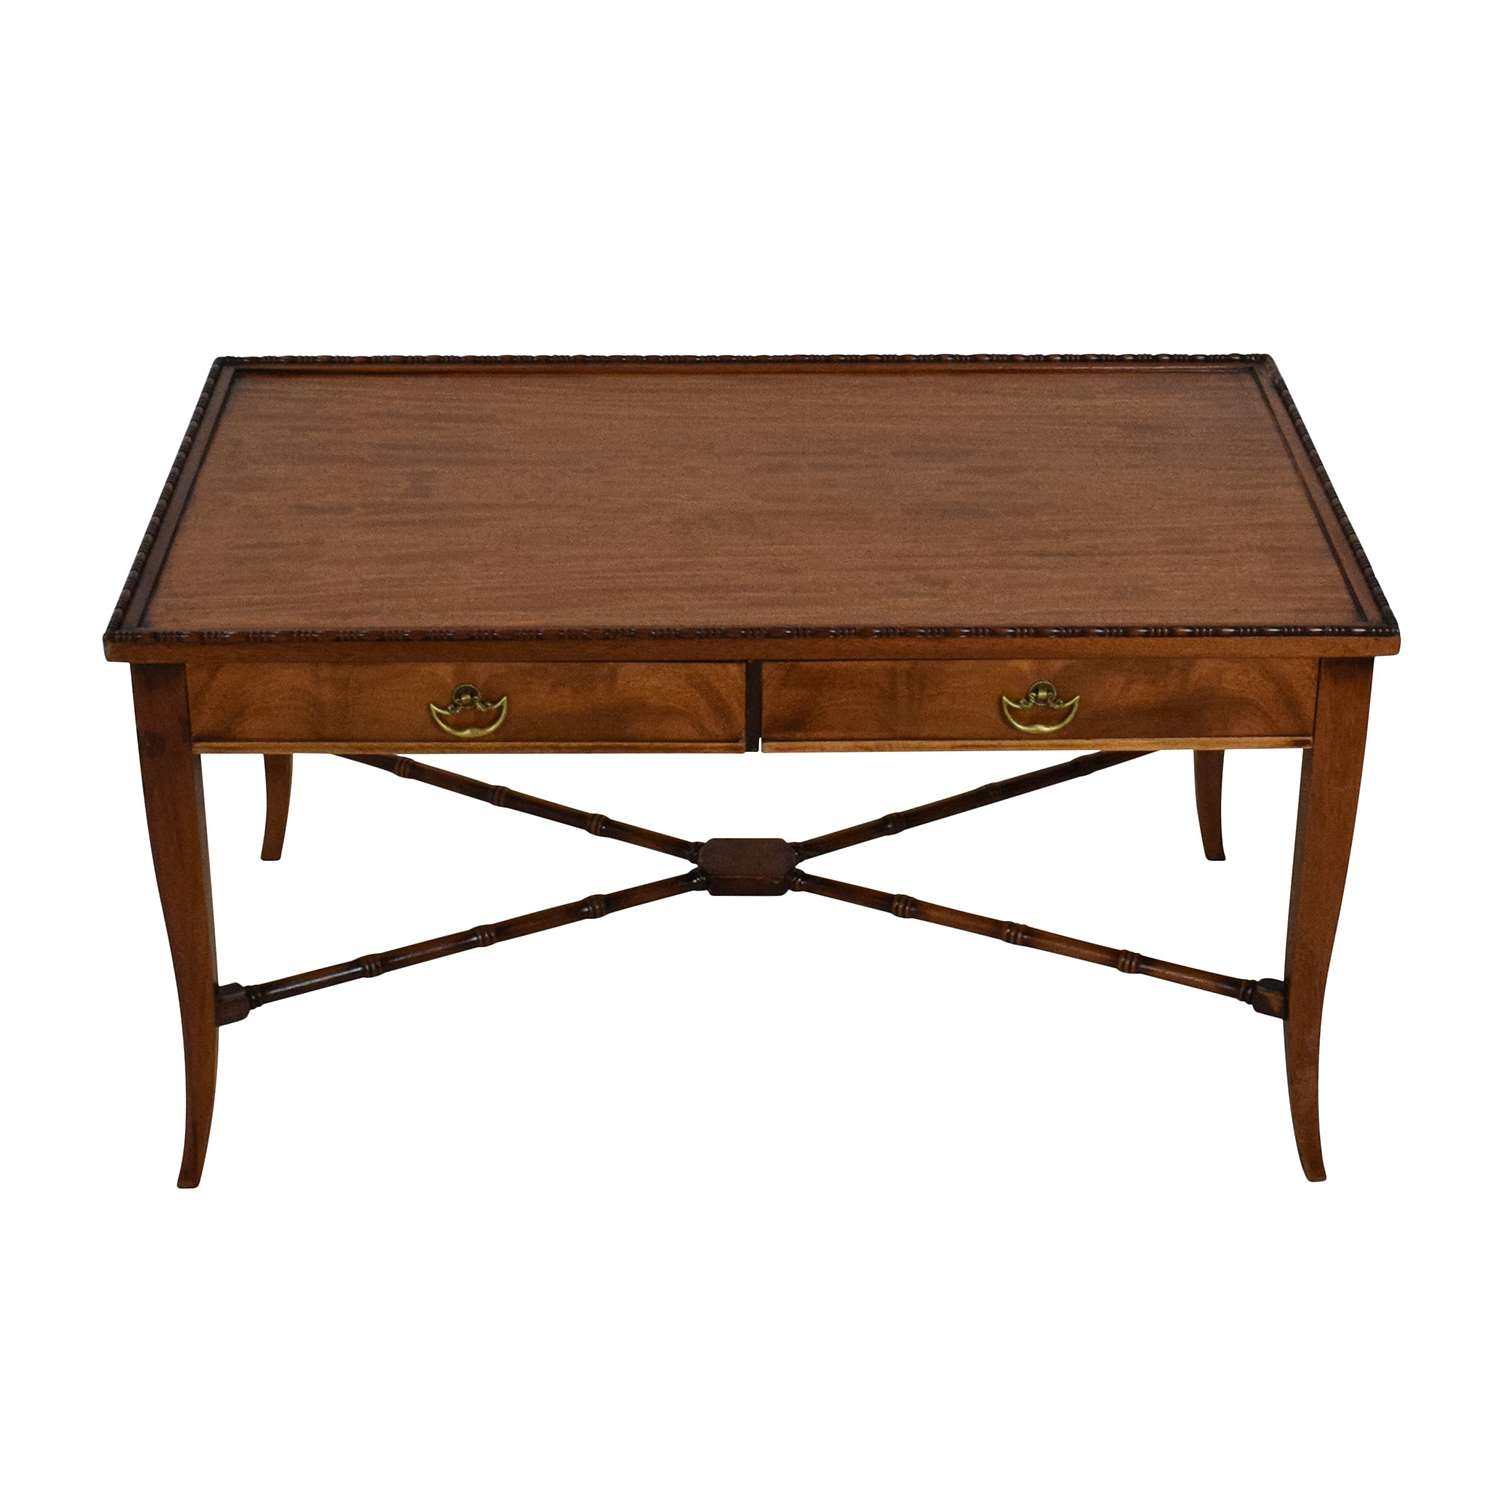 [%Most Popular Mahogany Coffee Tables Pertaining To 51% Off – Imperial Grand Rapids Imperial Grand Rapids Mahogany|51% Off – Imperial Grand Rapids Imperial Grand Rapids Mahogany For Latest Mahogany Coffee Tables%] (View 1 of 20)